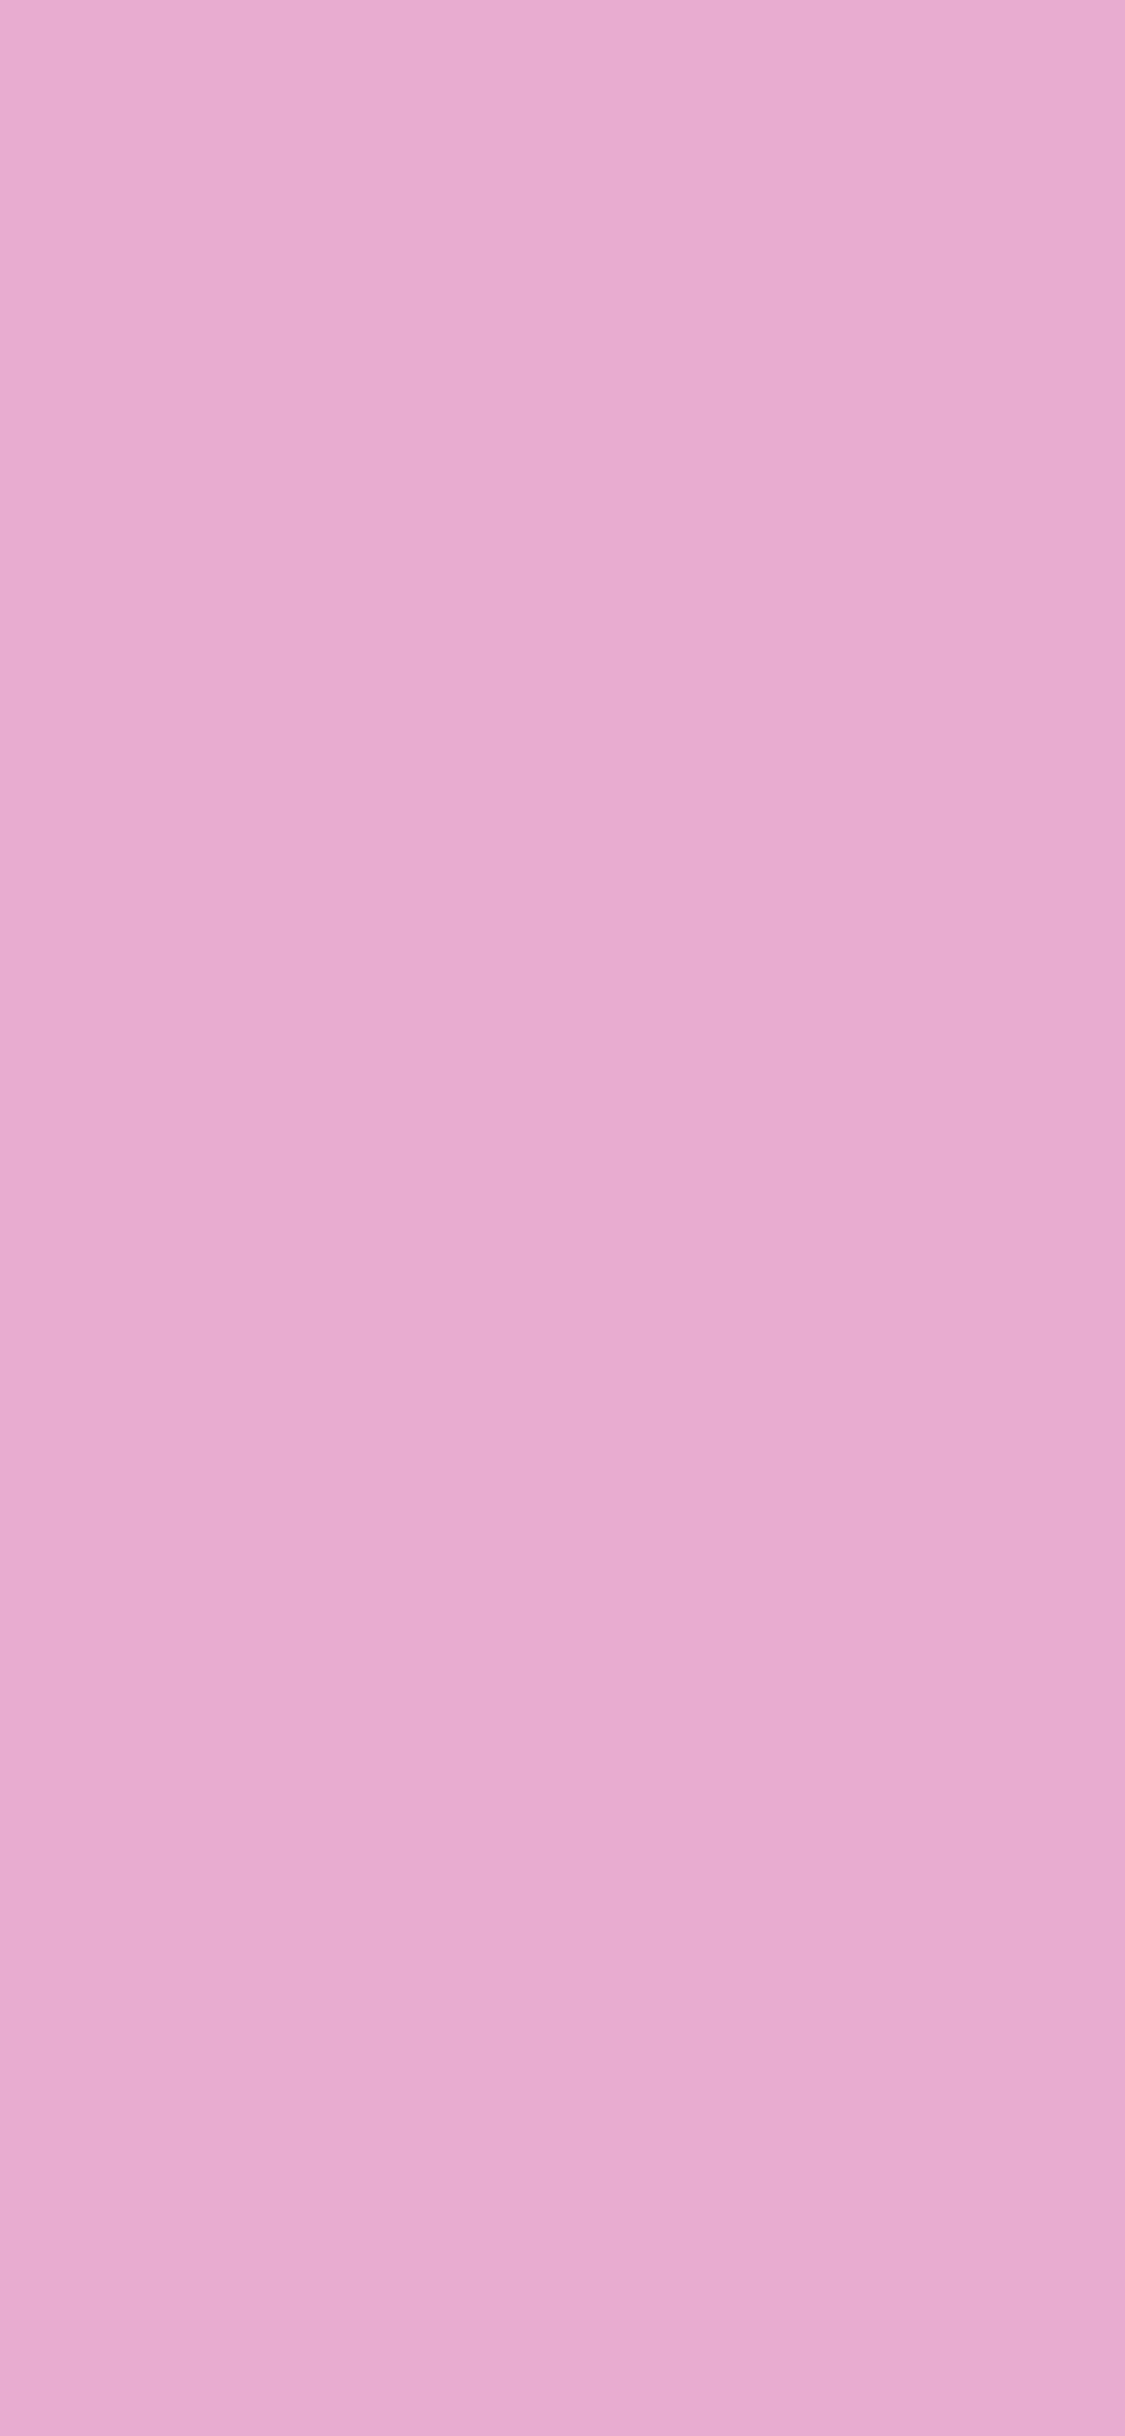 1125x2436 Pink Pearl Solid Color Background